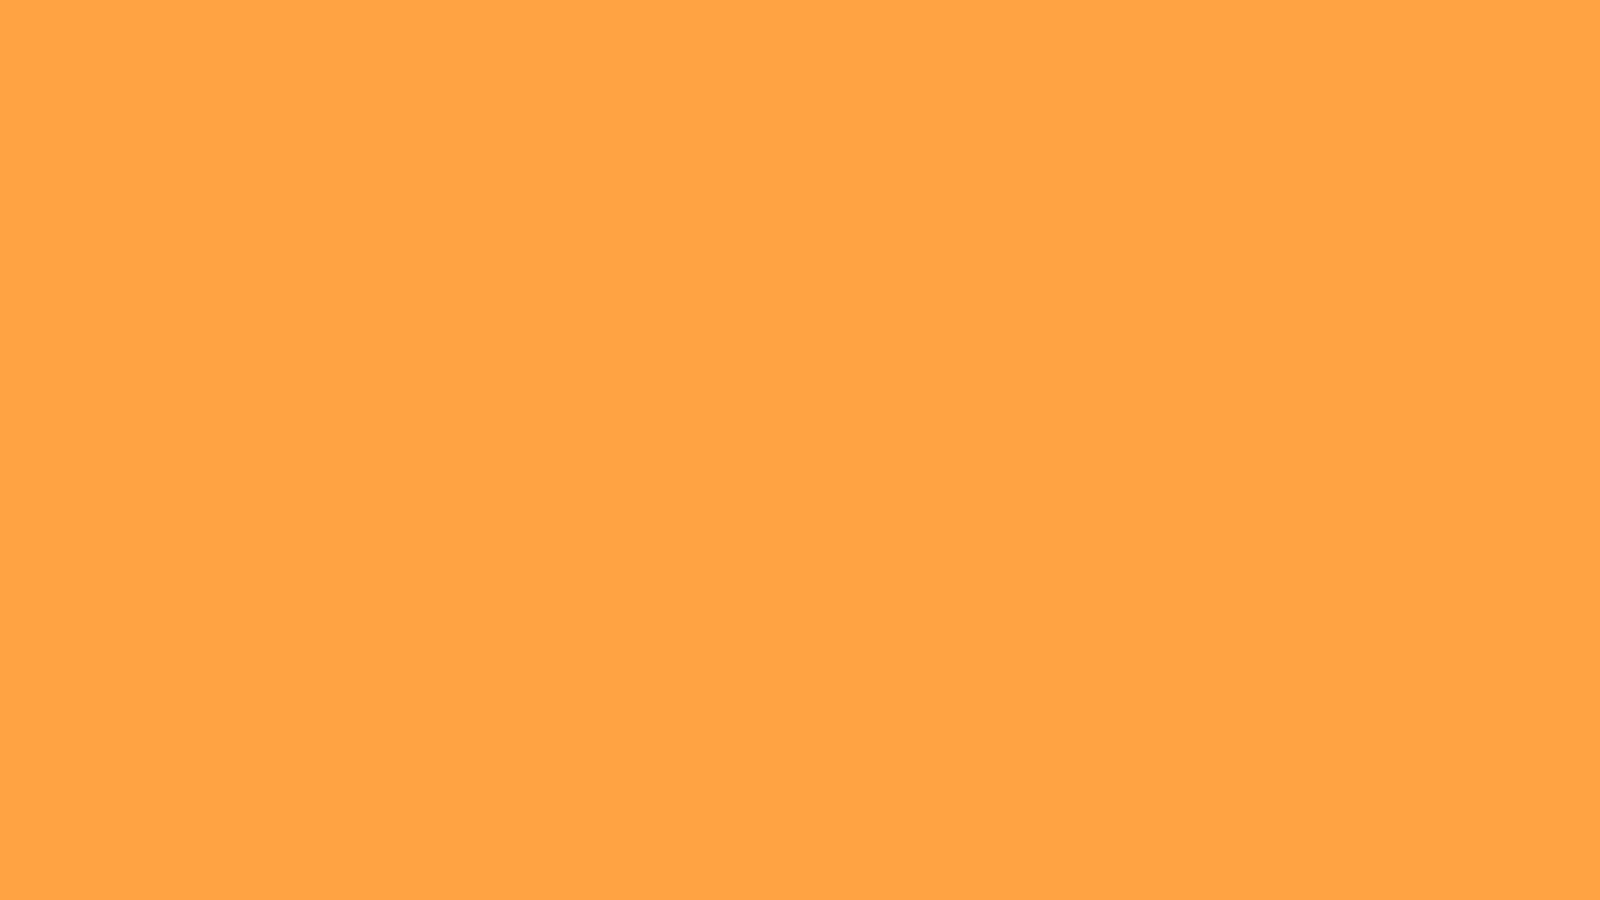 1600x900 Neon Carrot Solid Color Background